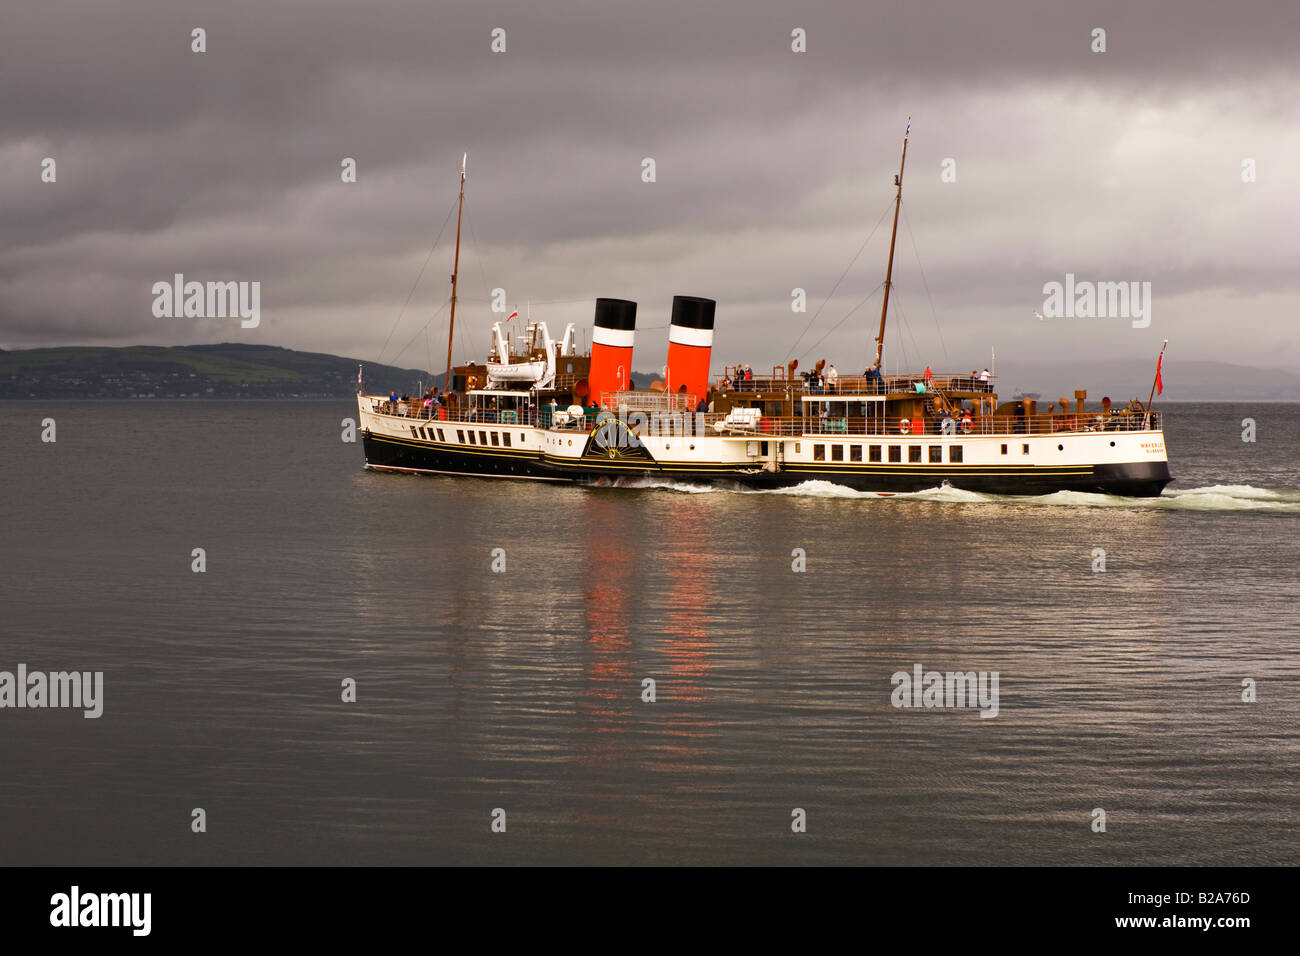 ps-waverley-leaving-dunoon-on-the-clyde-